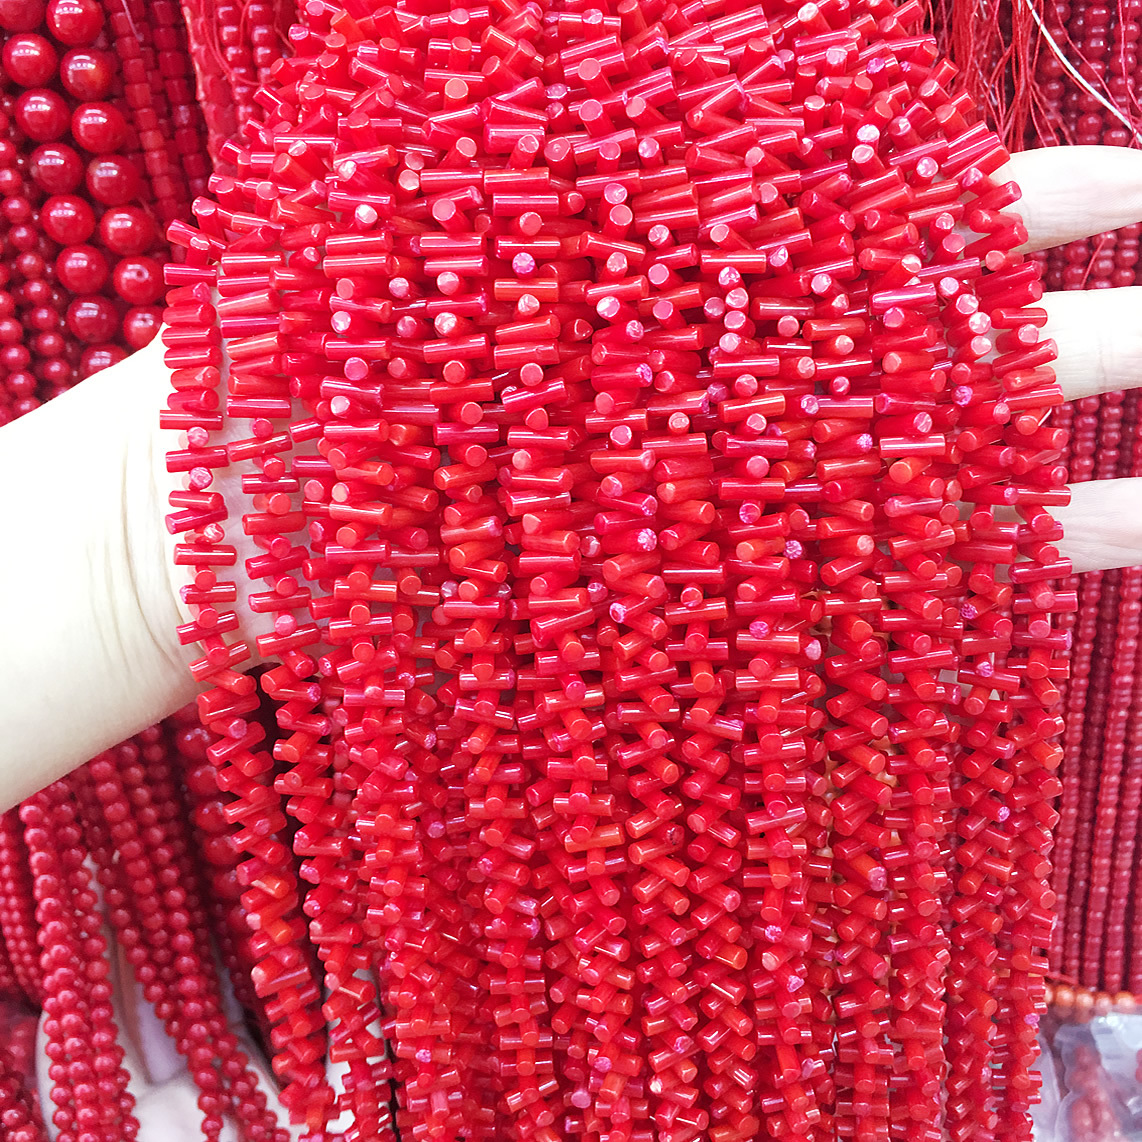 quality irregular <font><b>Coral</b></font> seedlings shape <font><b>red</b></font> loose spacer beads DIY for bracelet necklace Handmade semi-finished loose beads image